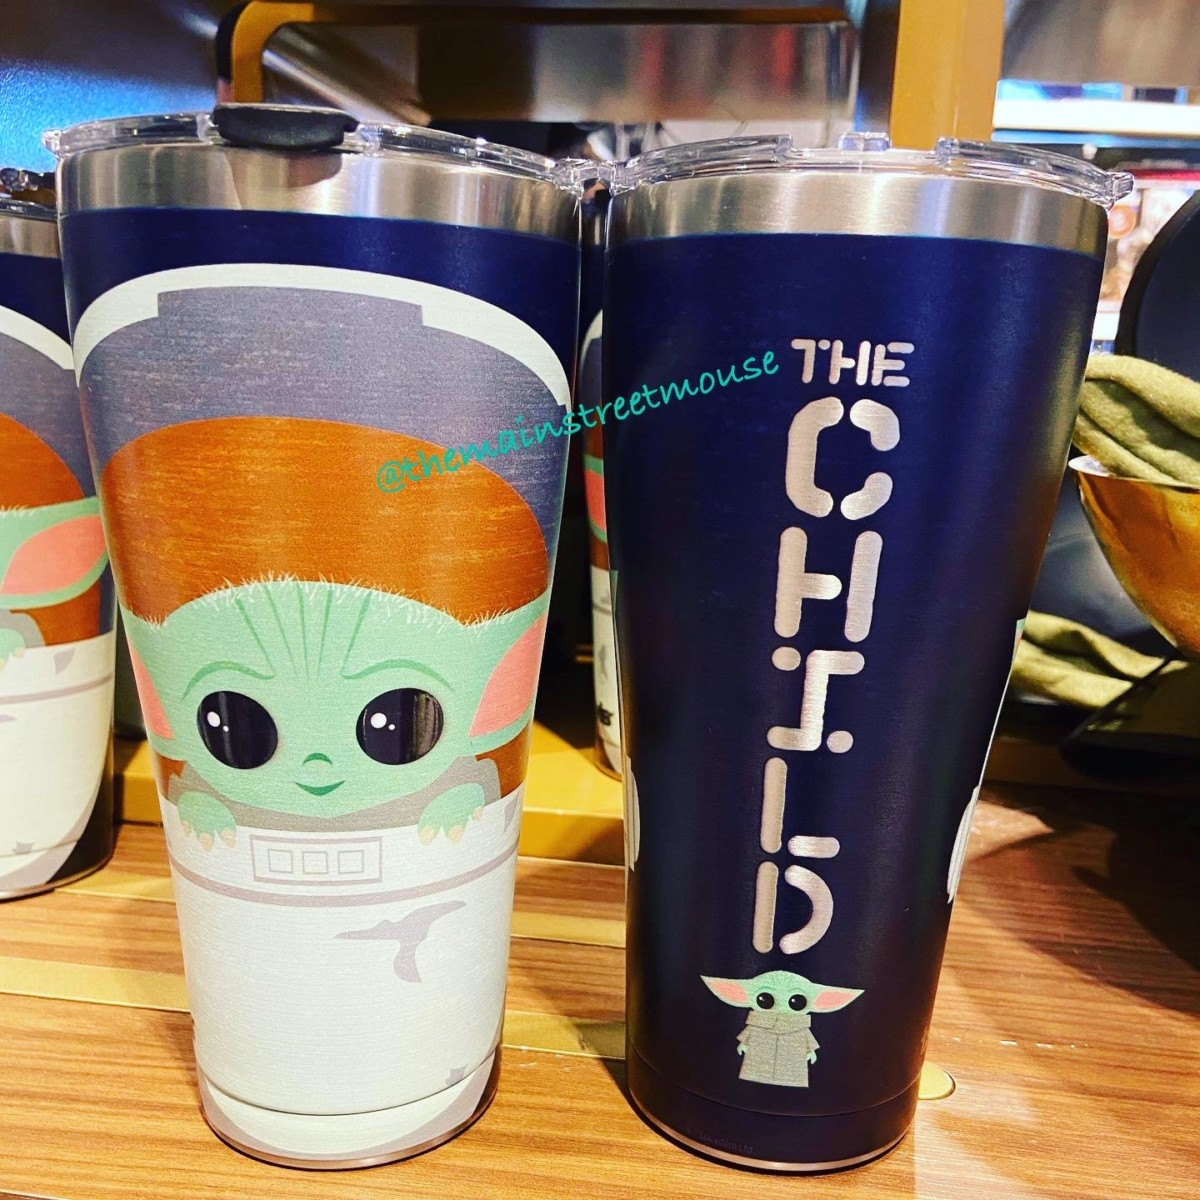 The Child aka Baby Yoda Tervis Tumblers at Hollywood Studios 22